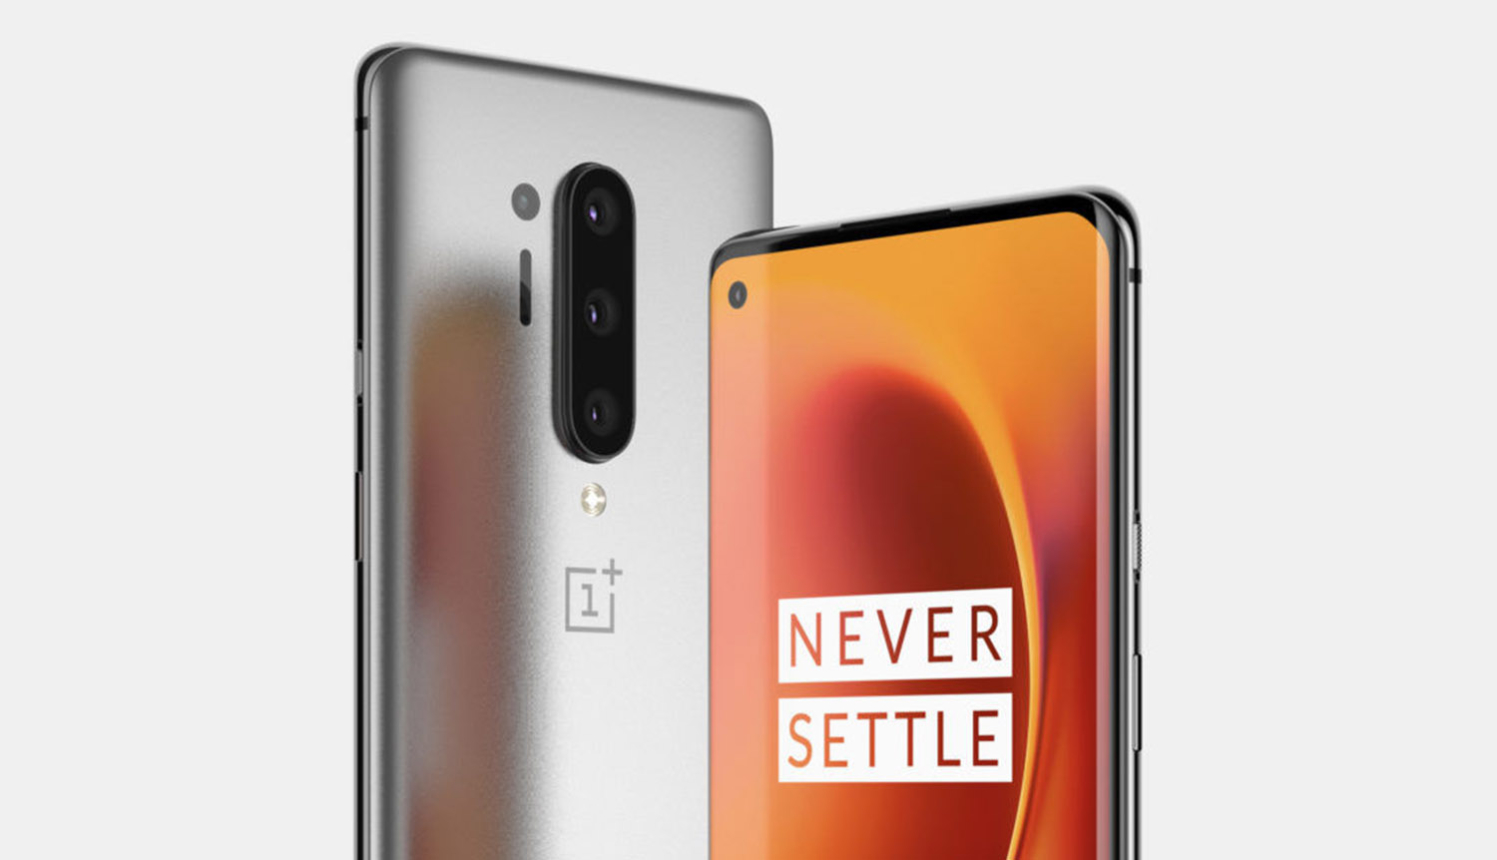 OnePlus acknowledges hardware display issue with the OP 8 Pro flagship, will offer replacements